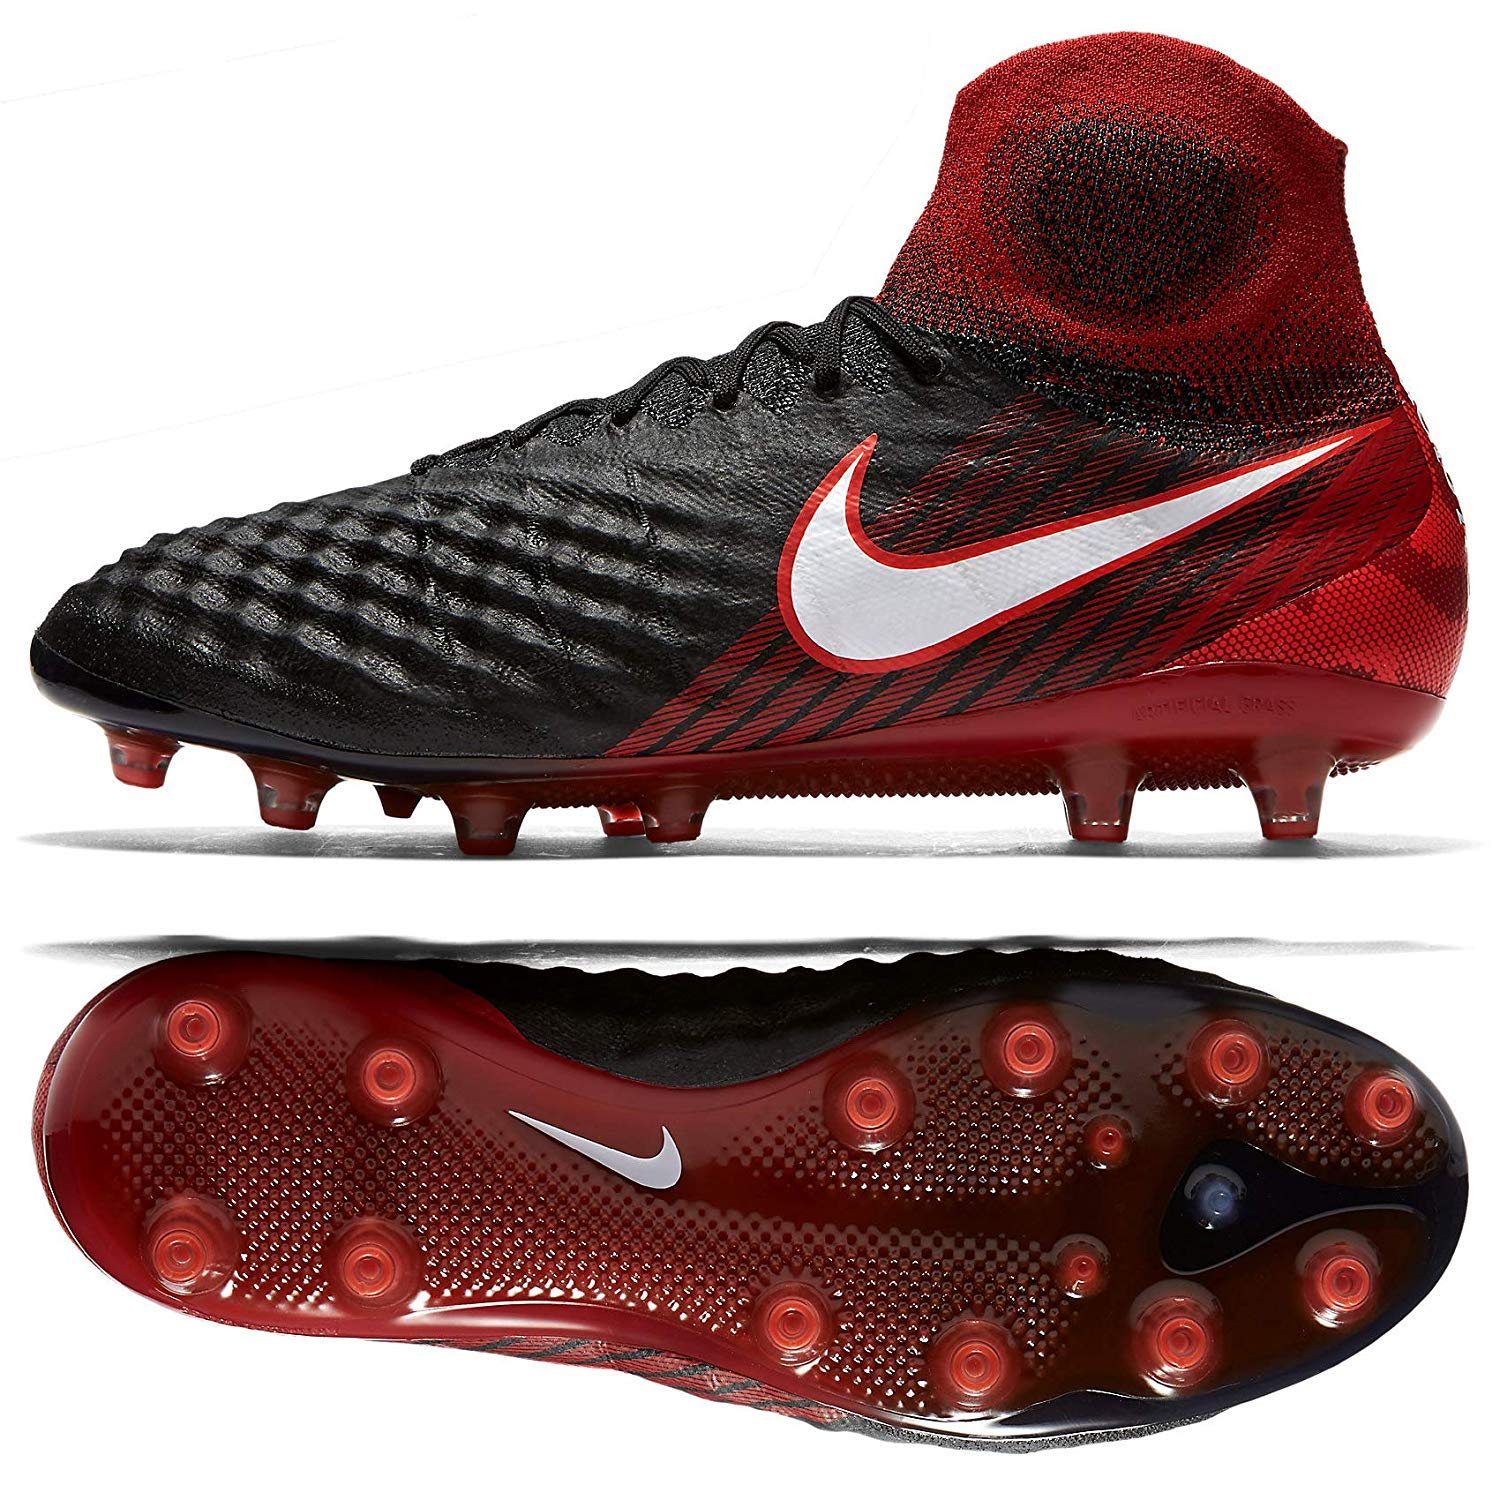 1d2aee9fd31c Nike Magista Obra II AG-PRO Men s Soccer Cleats Black Red 844594-061 Sz 8.5